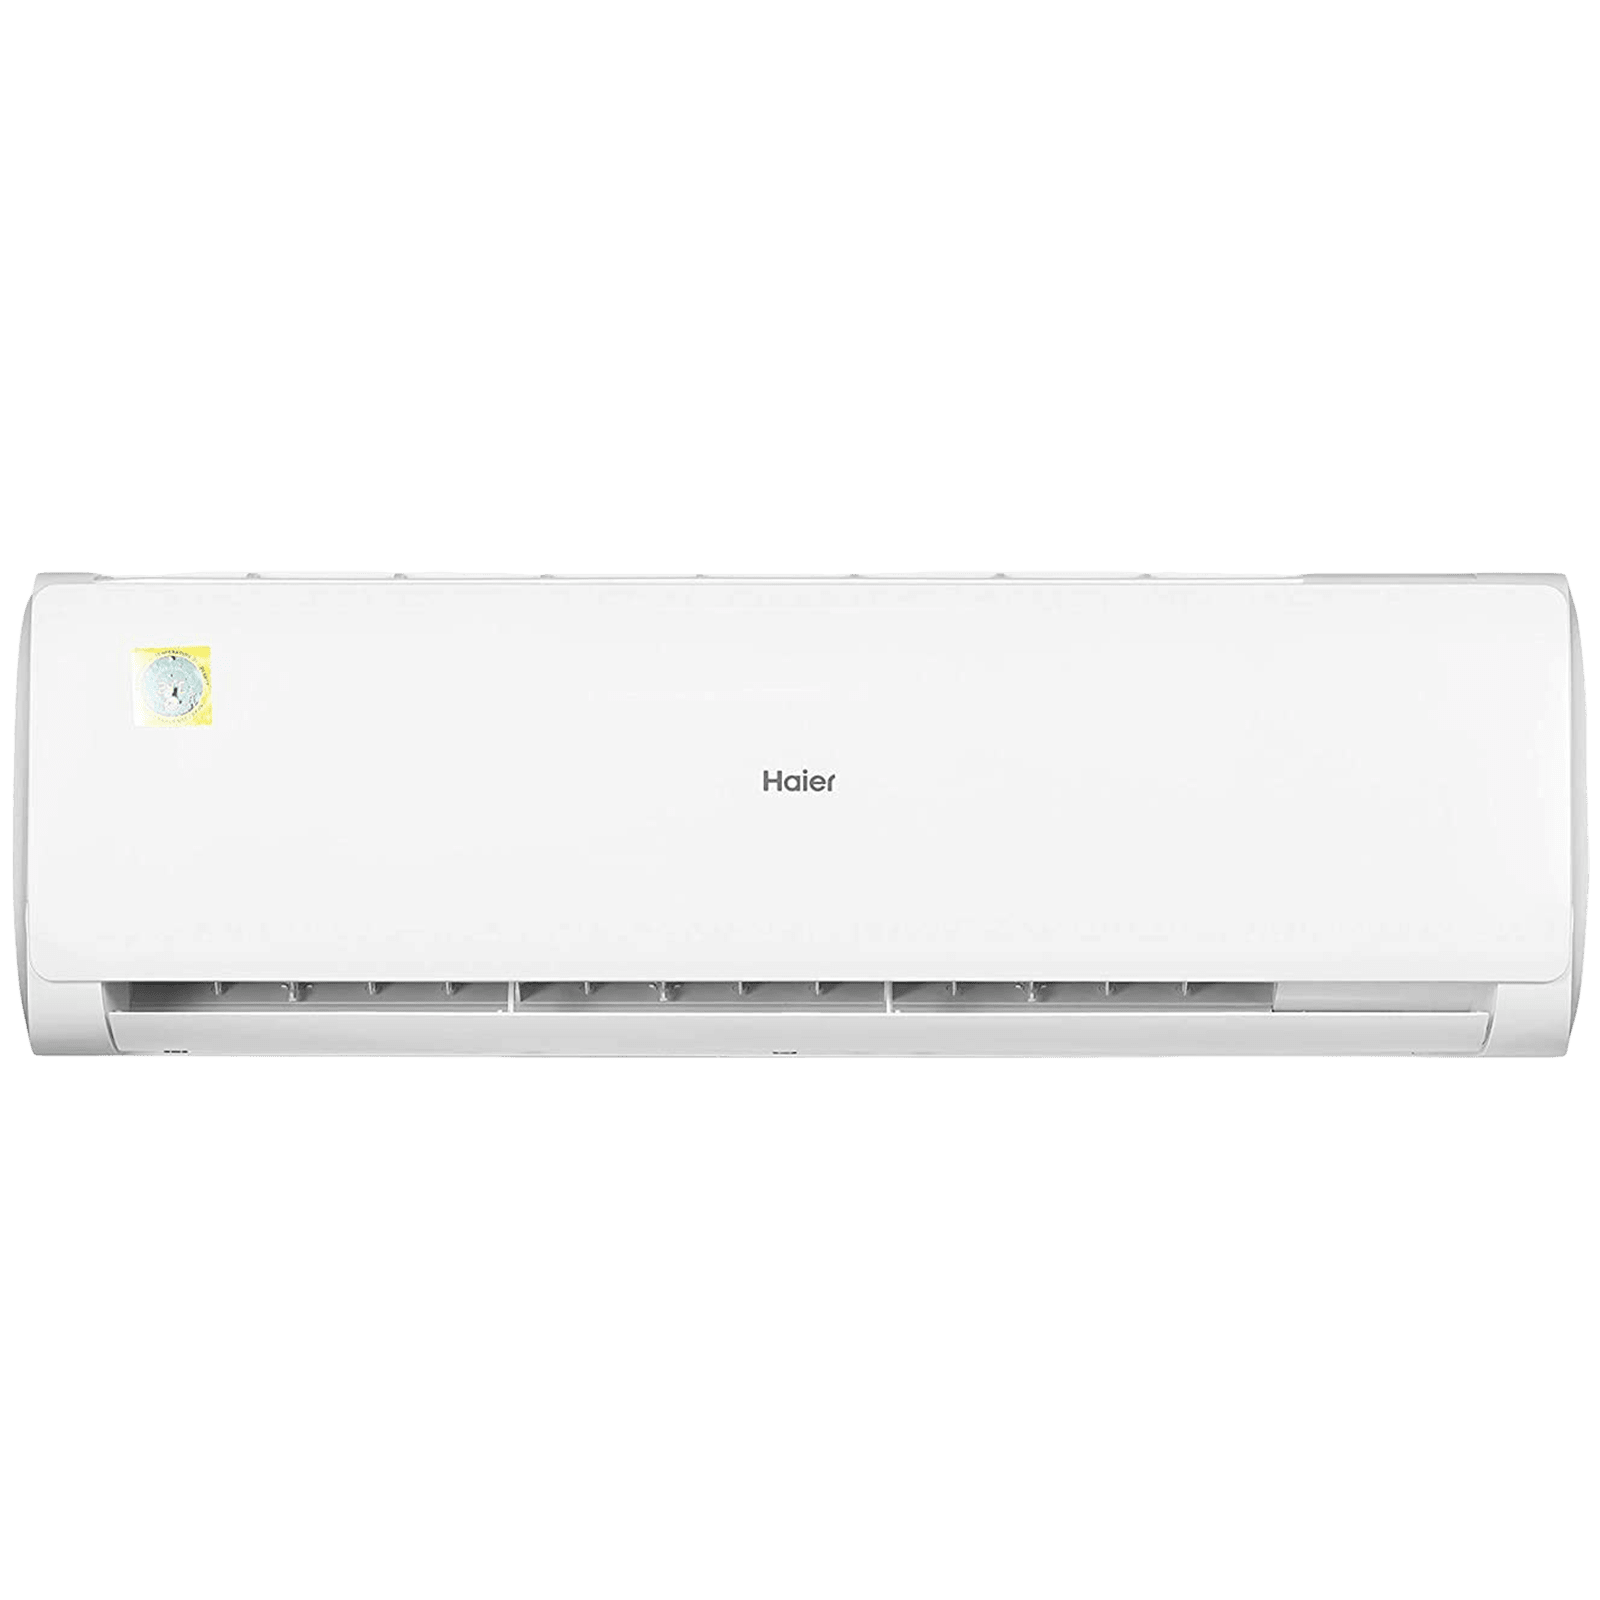 Haier TurboCool XL 2 Ton 1 Star Split AC (Copper Condenser, HSU22T-TFW1B, White)